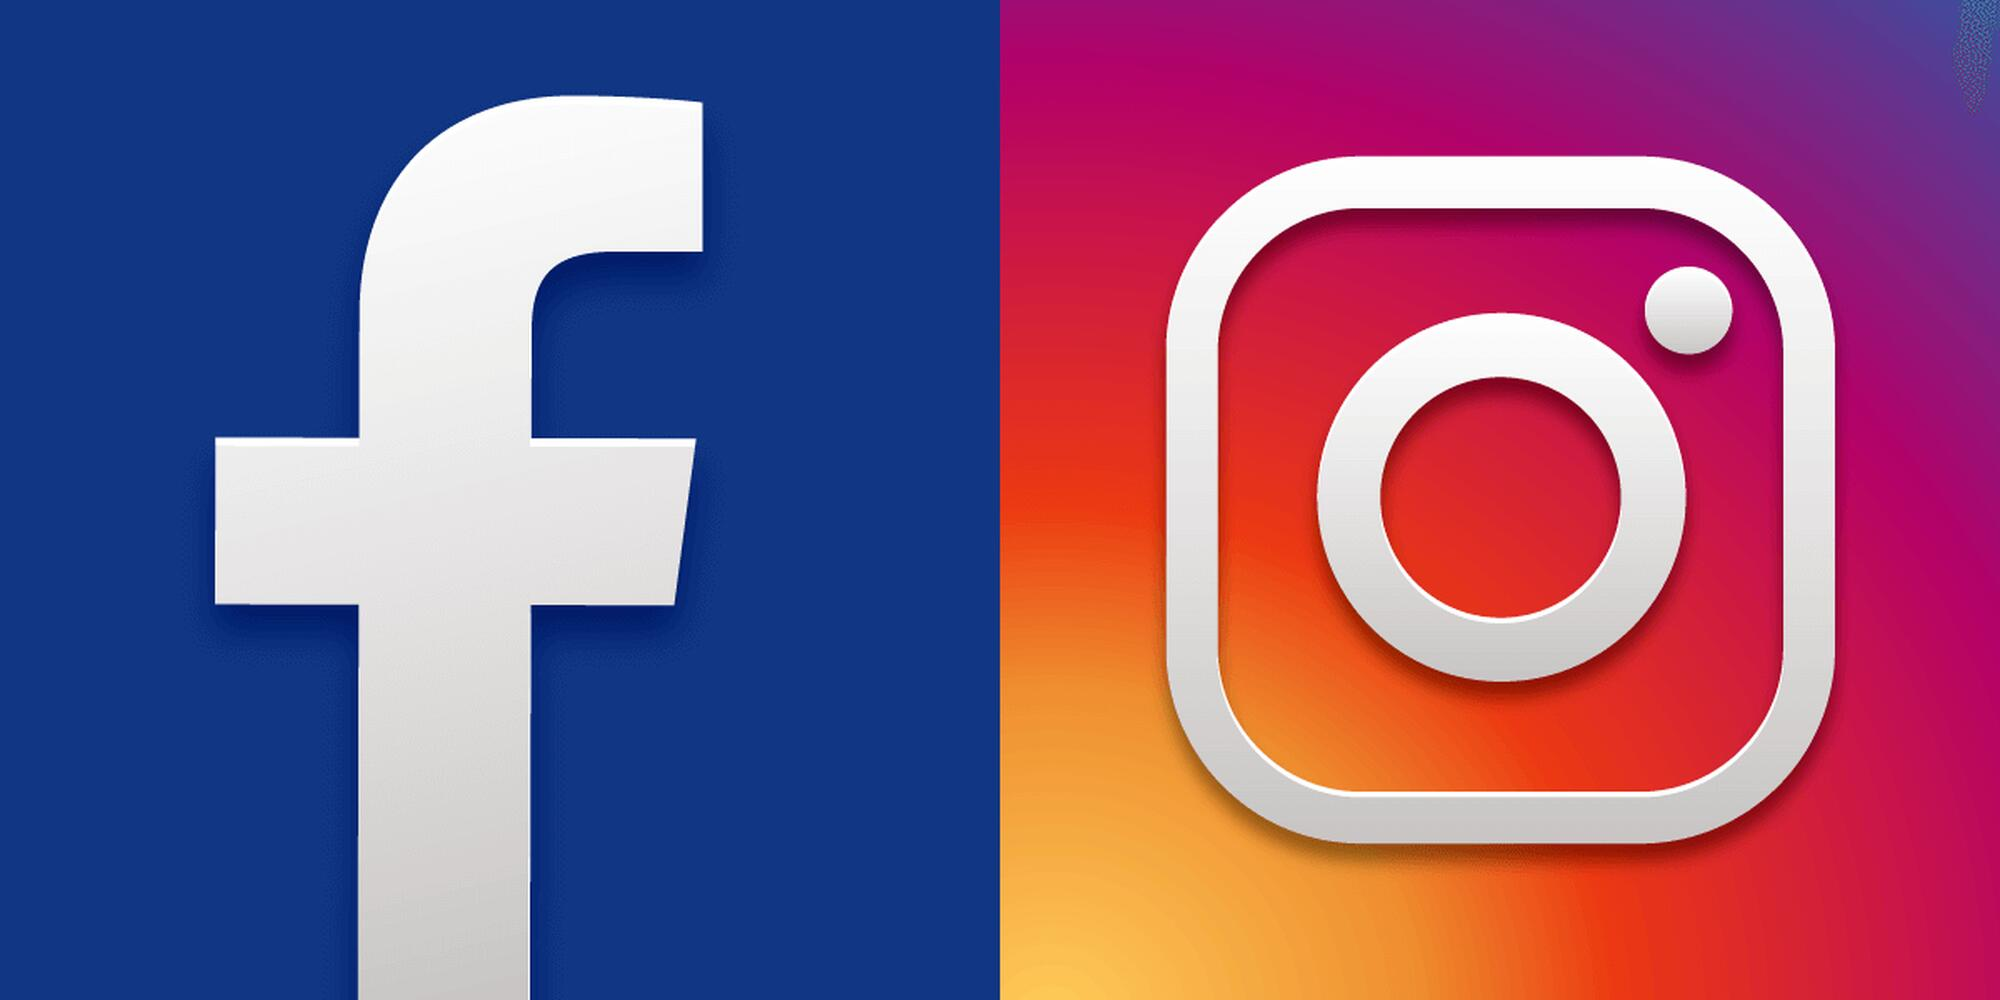 Facebook and Instagram logos